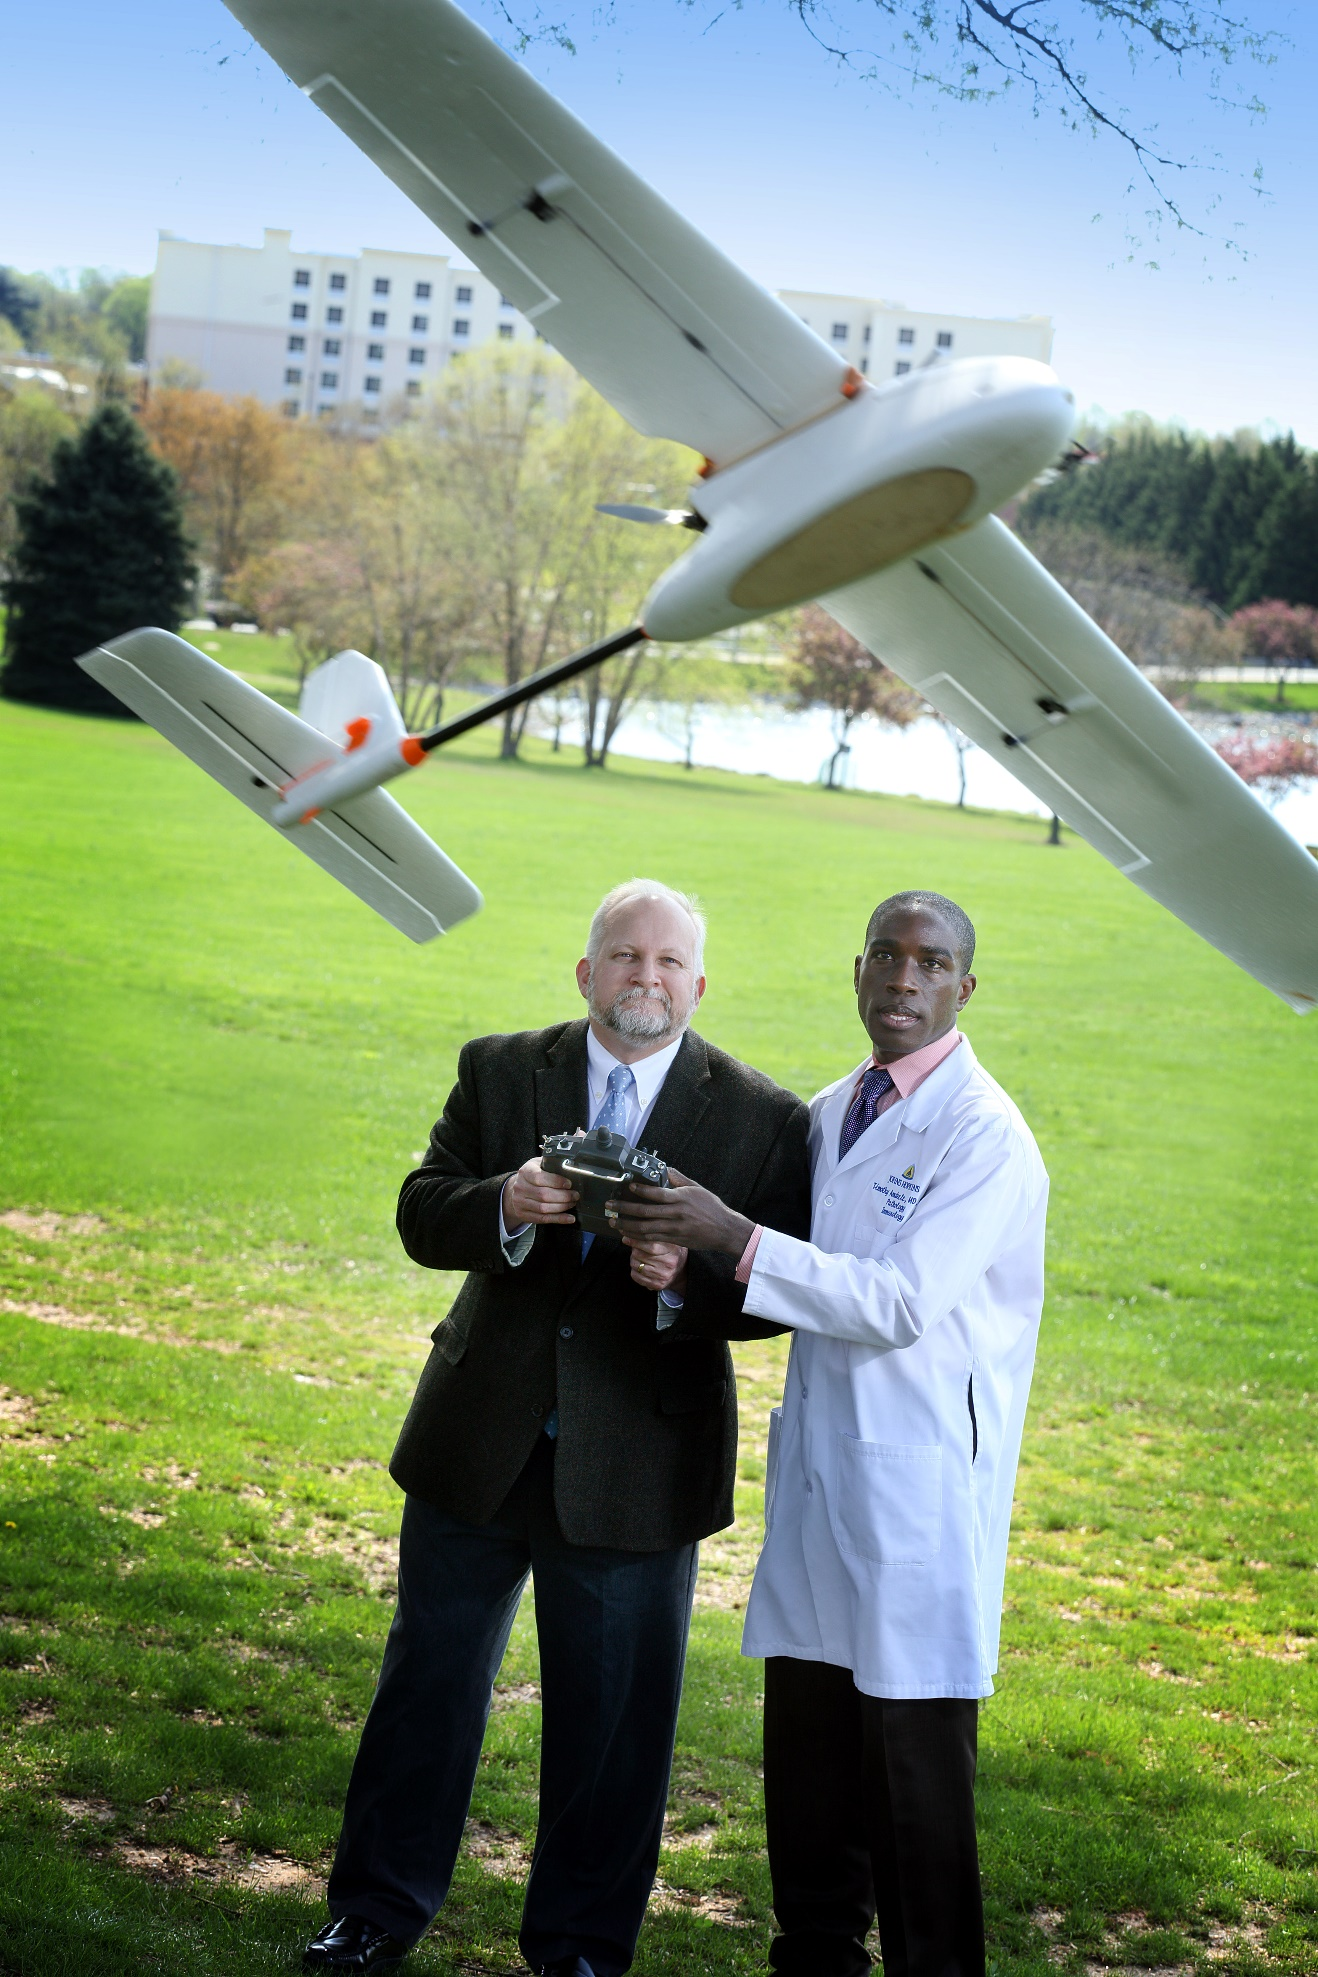 Pathologist Timothy Amukele teamed with Robert Chalmers and other engineers to create a drone courier system that transports blood to diagnostic laboratories. Johns Hopkins Medicine